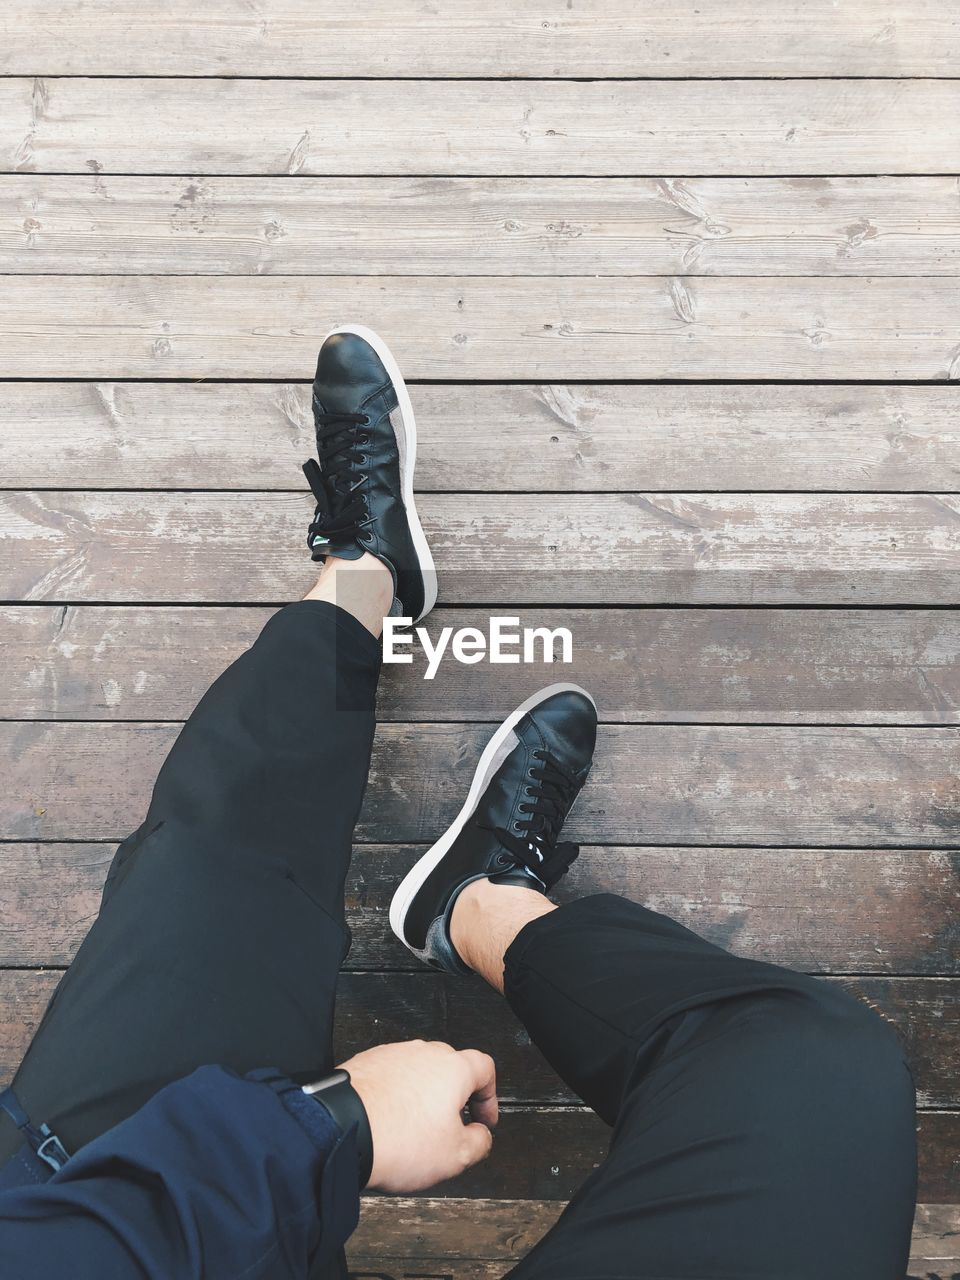 low section, shoe, human leg, real people, human body part, body part, lifestyles, wood - material, people, personal perspective, men, high angle view, footpath, day, leisure activity, two people, sitting, adult, black color, outdoors, human foot, wood, jeans